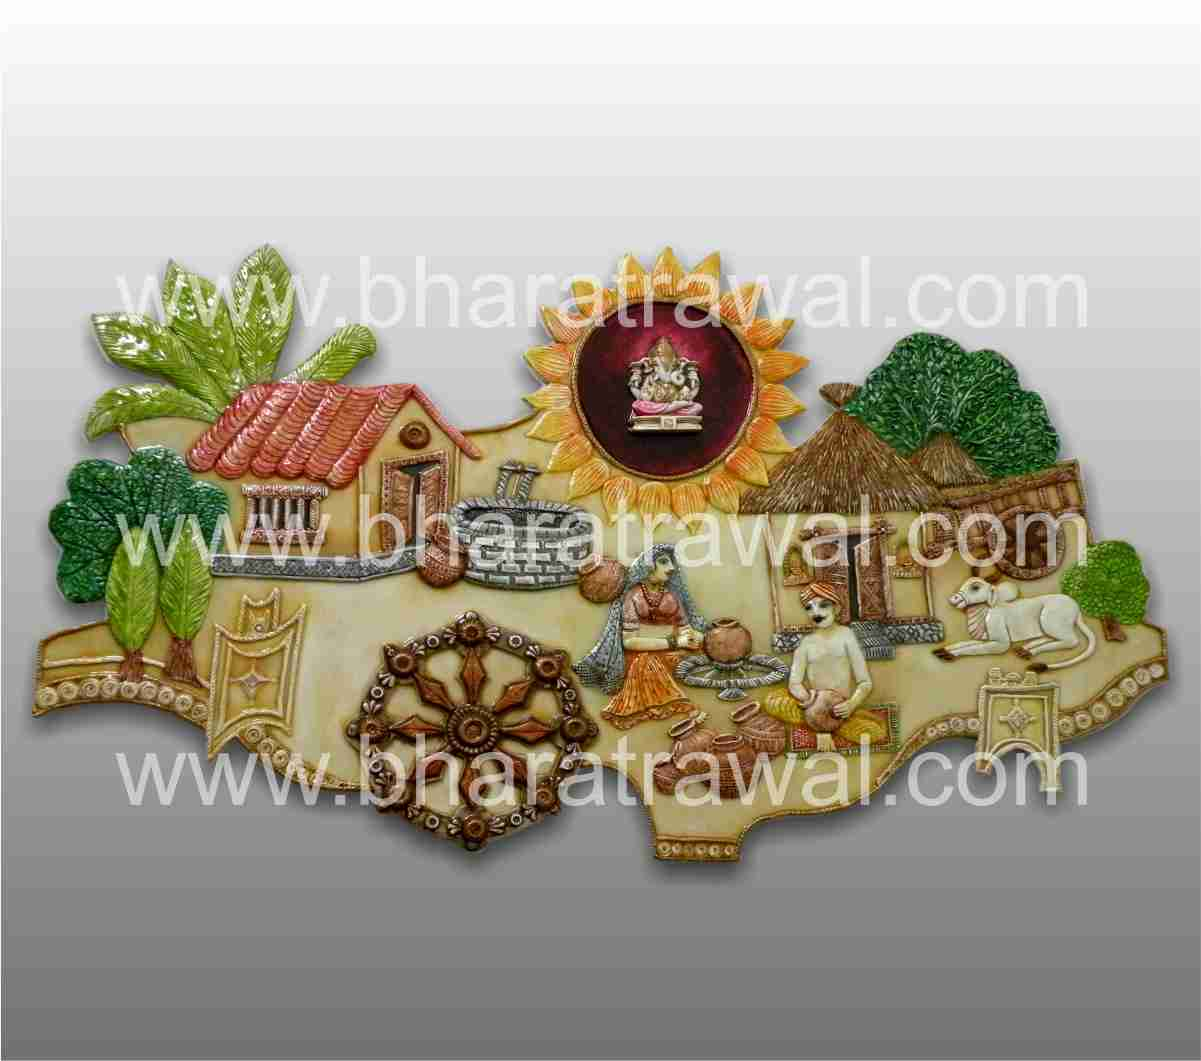 Mural art by muralguru bharat rawal ceramic murals a for Ceramic mural art